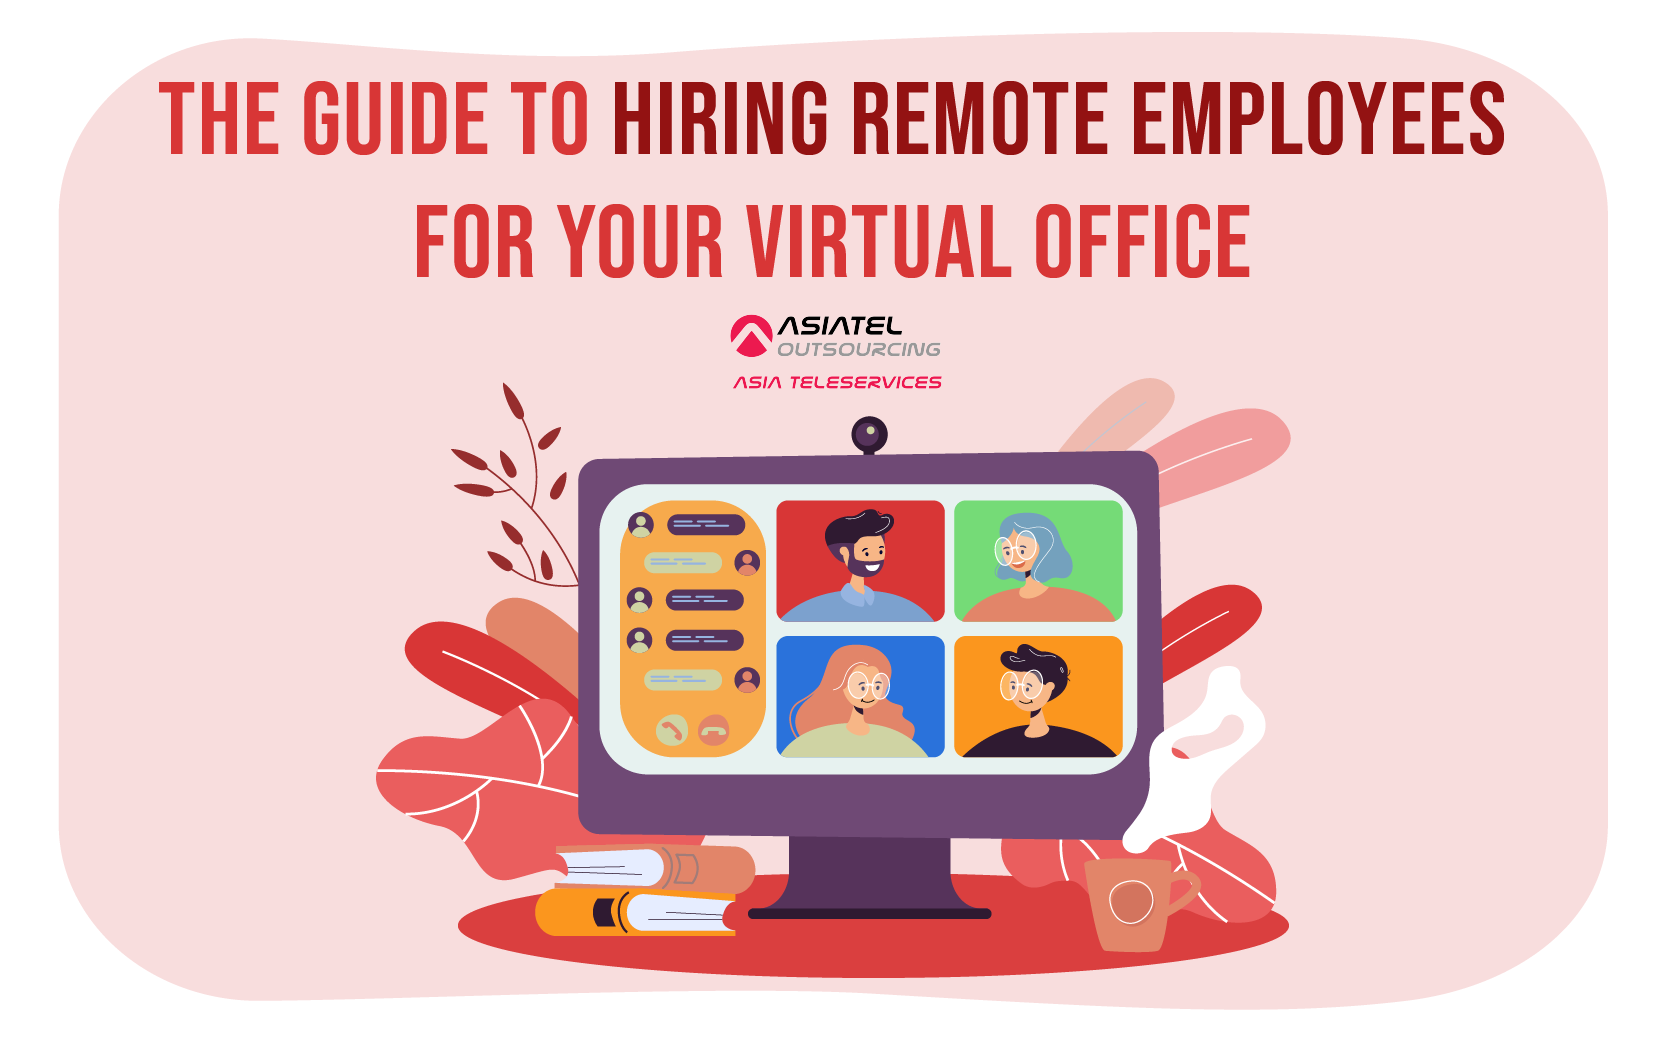 The Guide to Hiring Remote Employees for your Virtual Office